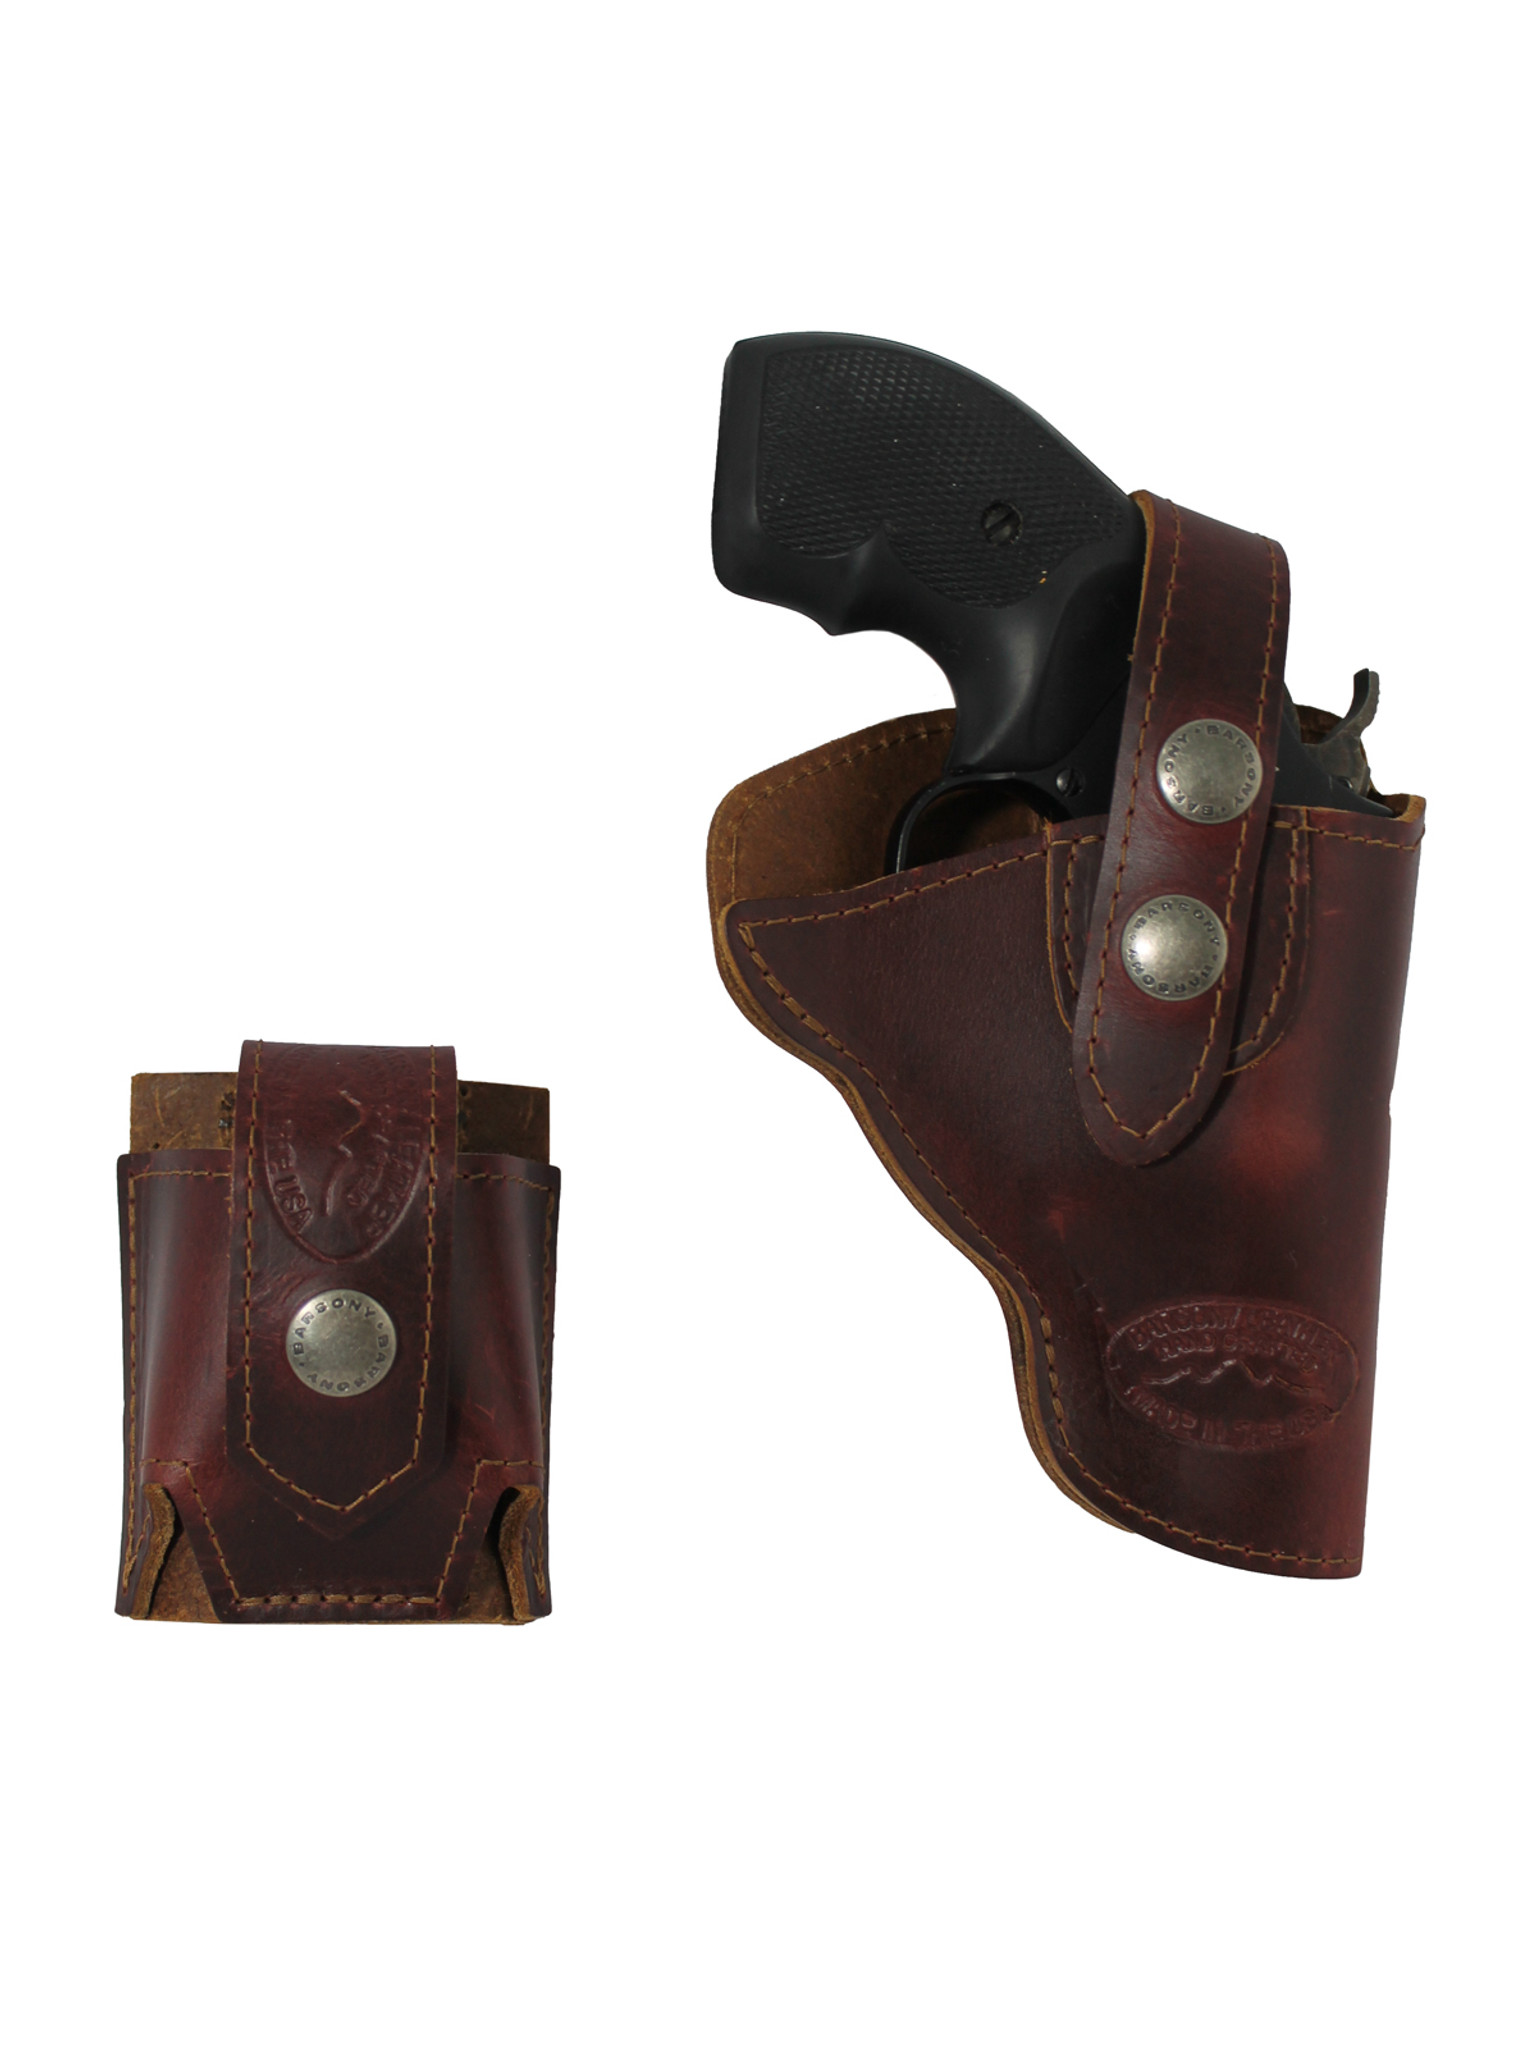 Burgundy Leather OWB Holster + Speed-loader Pouch for Snub